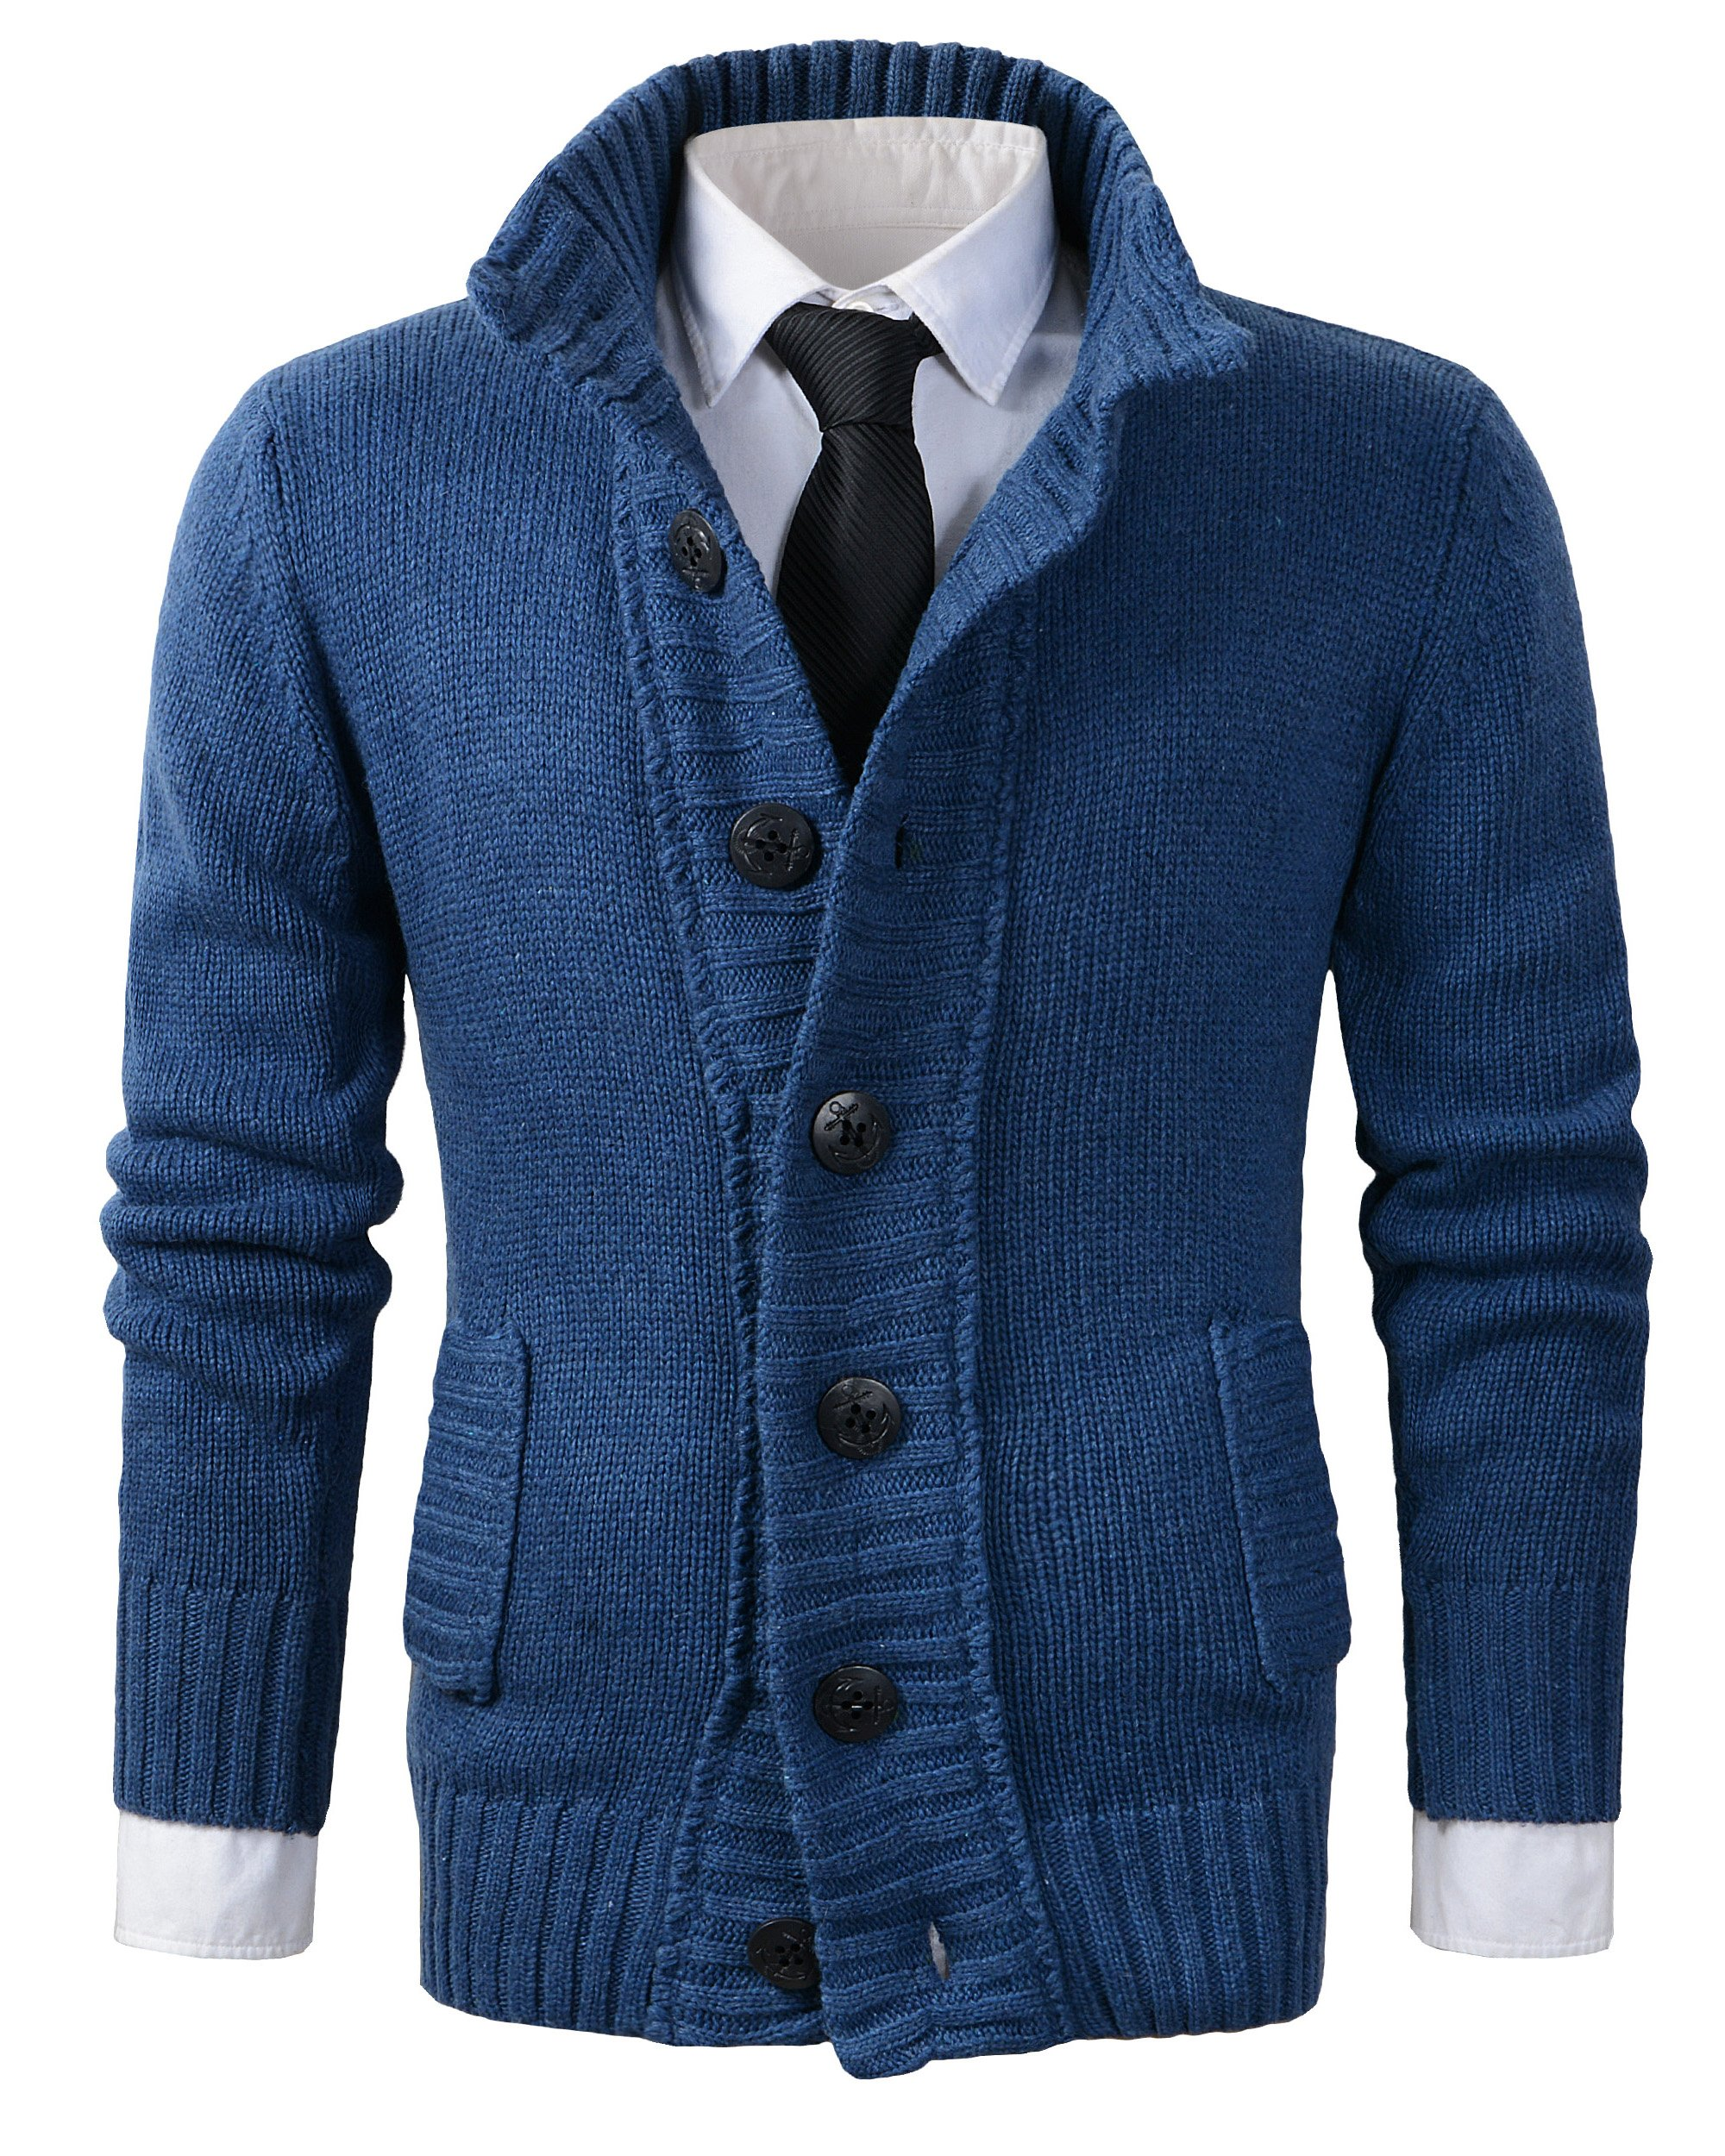 Benibos Men's Button Point Shawl Collar Knitted Slim Fit Cardigan Sweater (M, CYMY Blue)